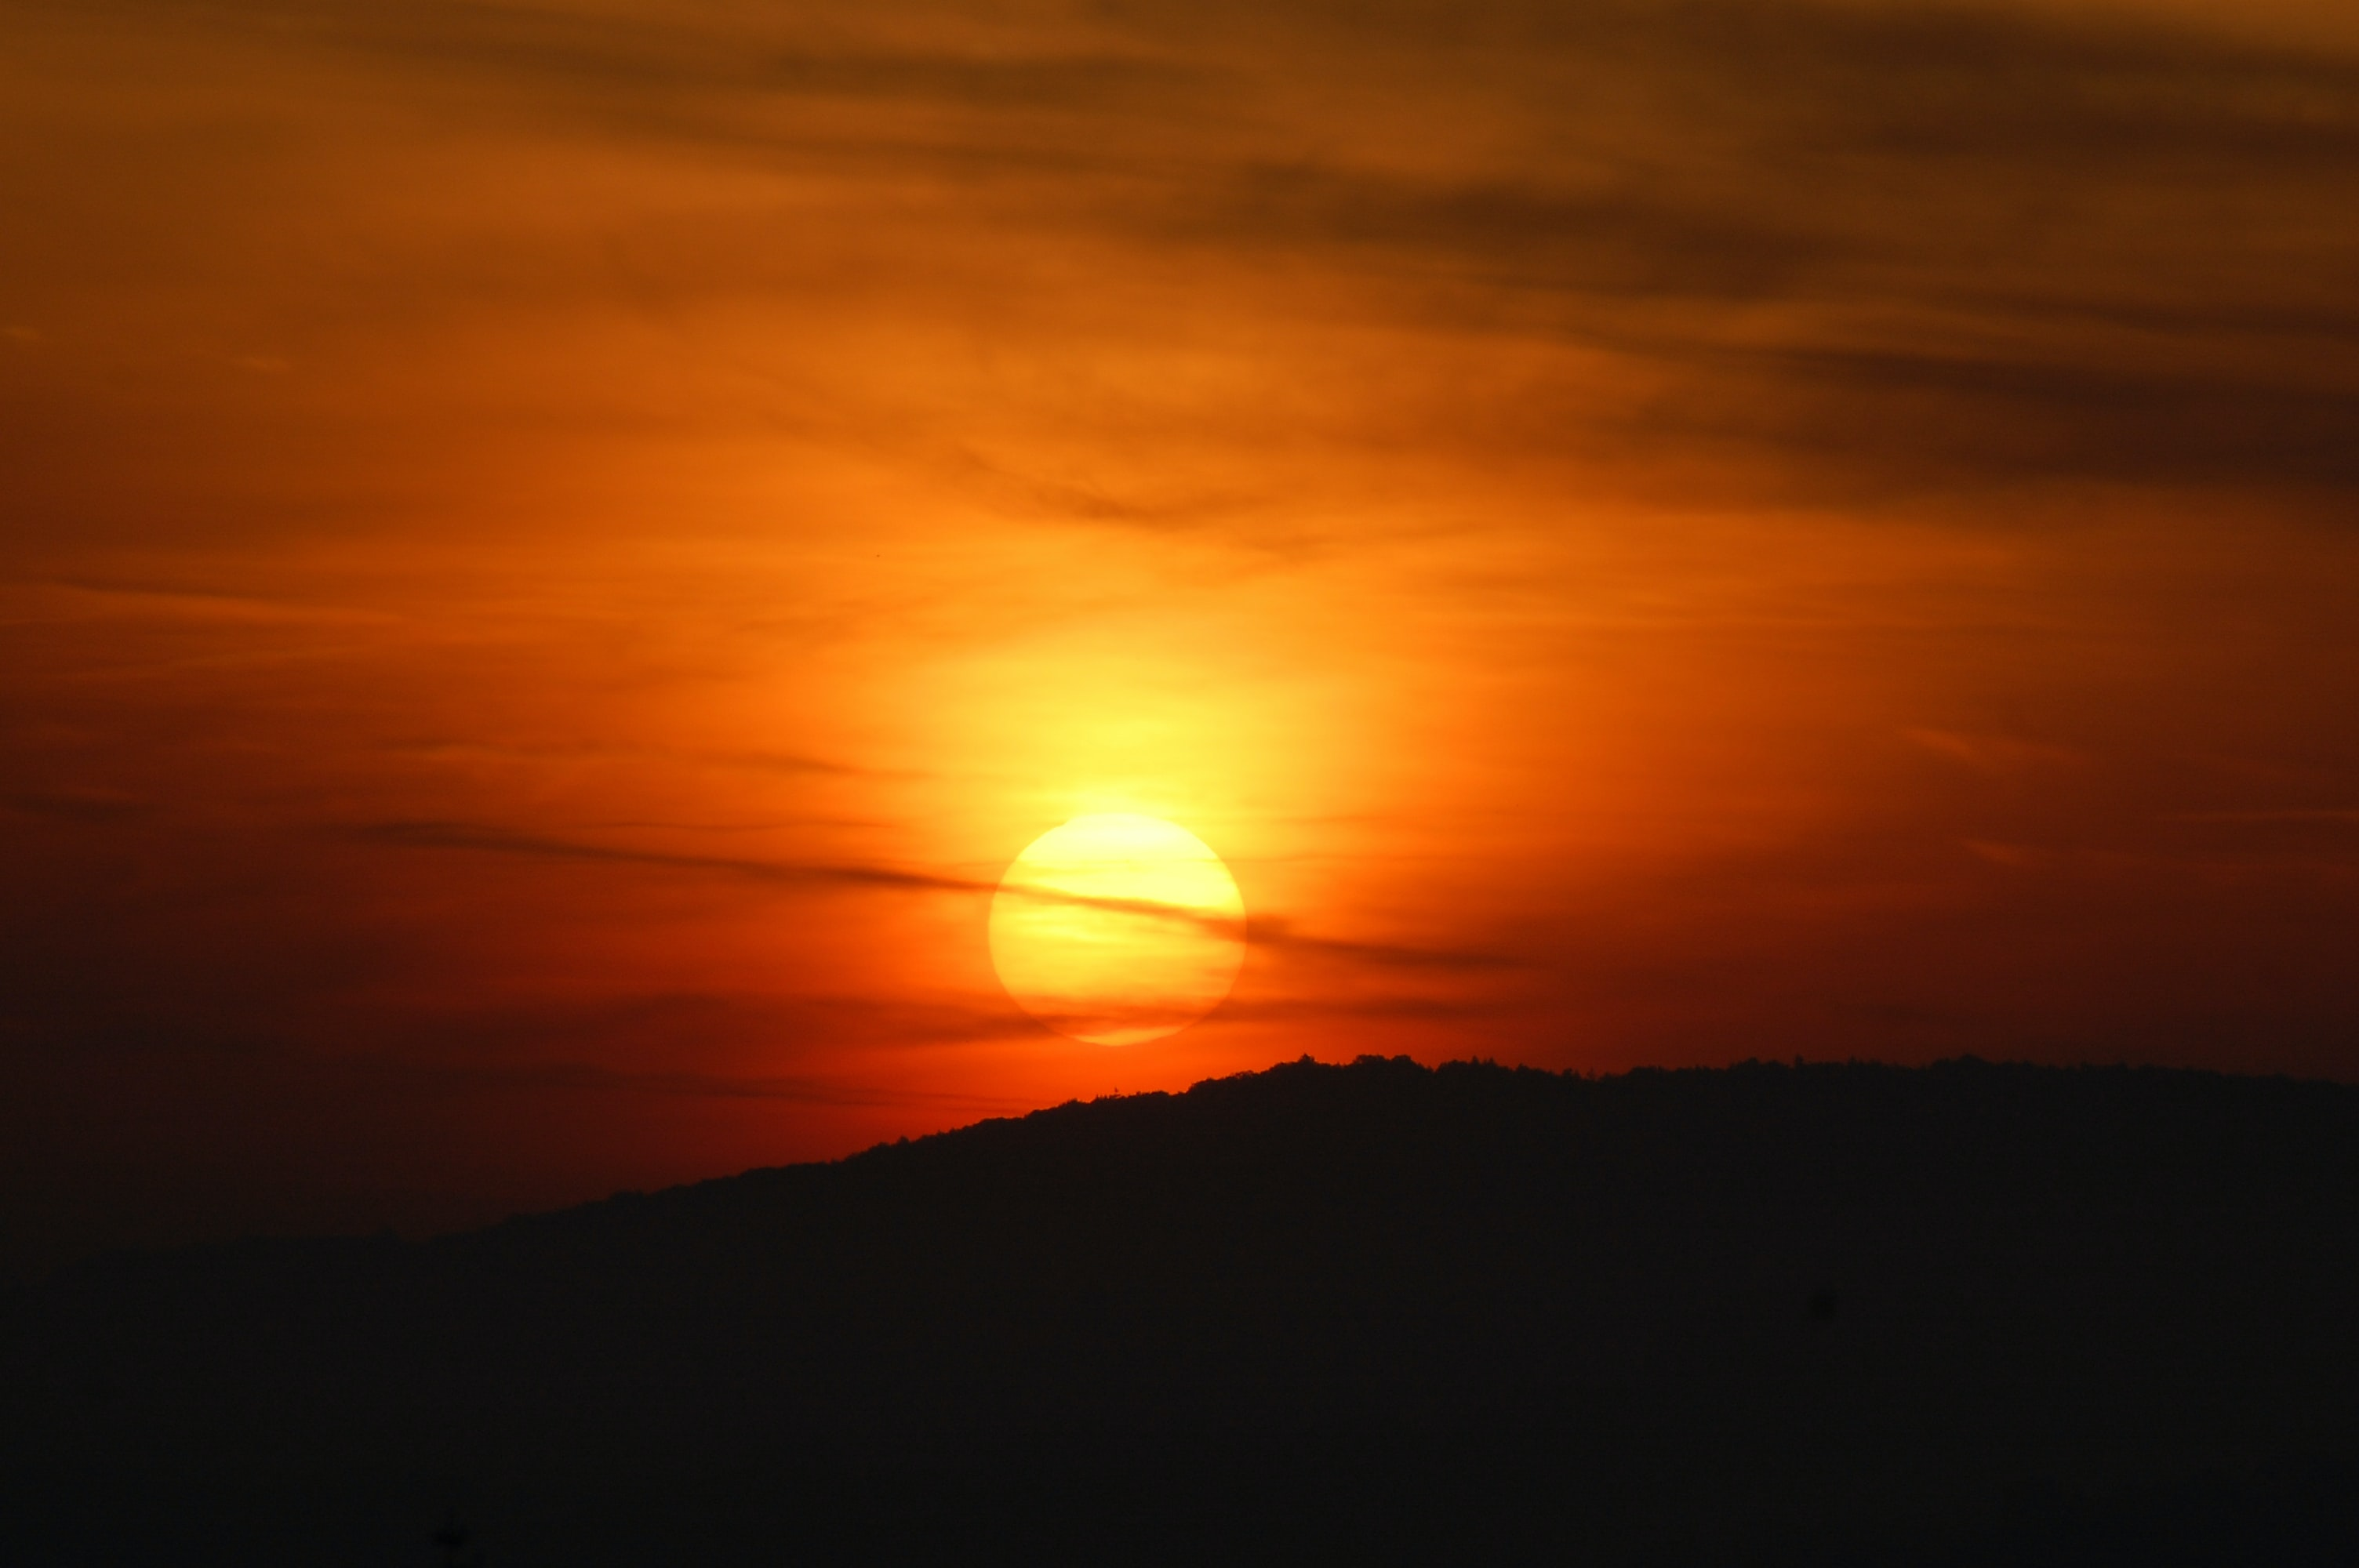 silhouette of mountain during orange sunset